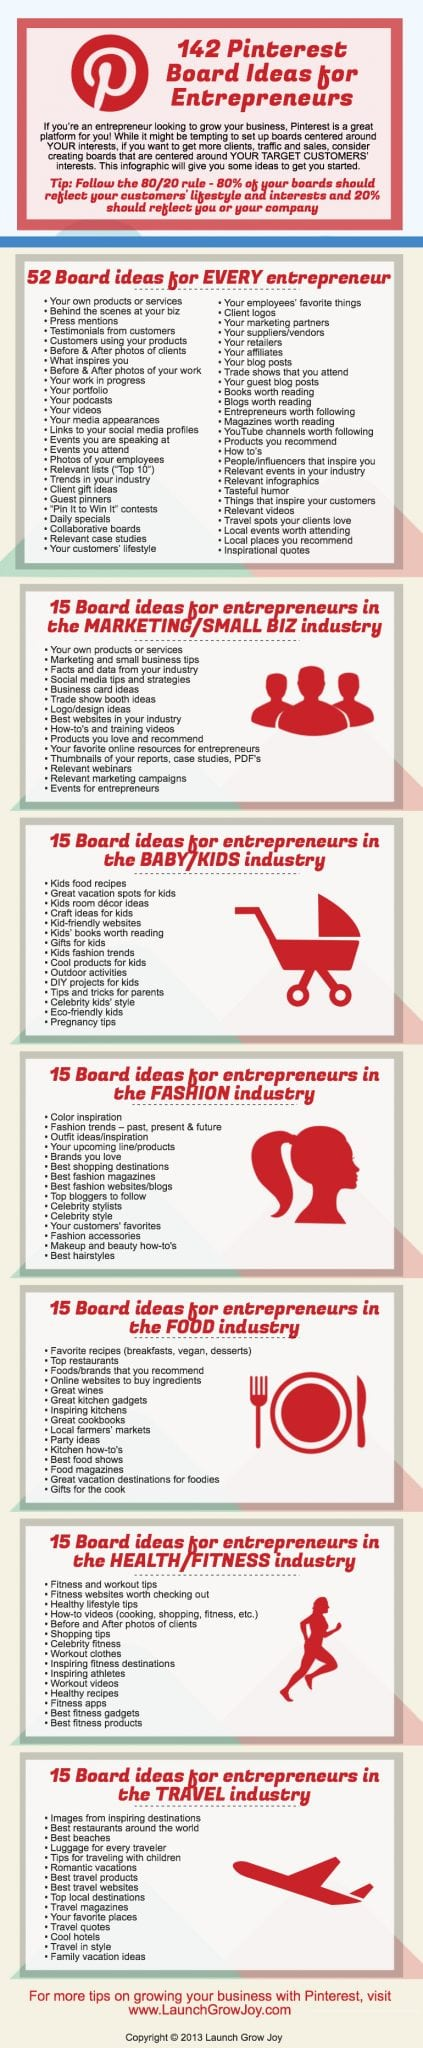 142-Pinterest-board-ideas-for-entrepreneurs